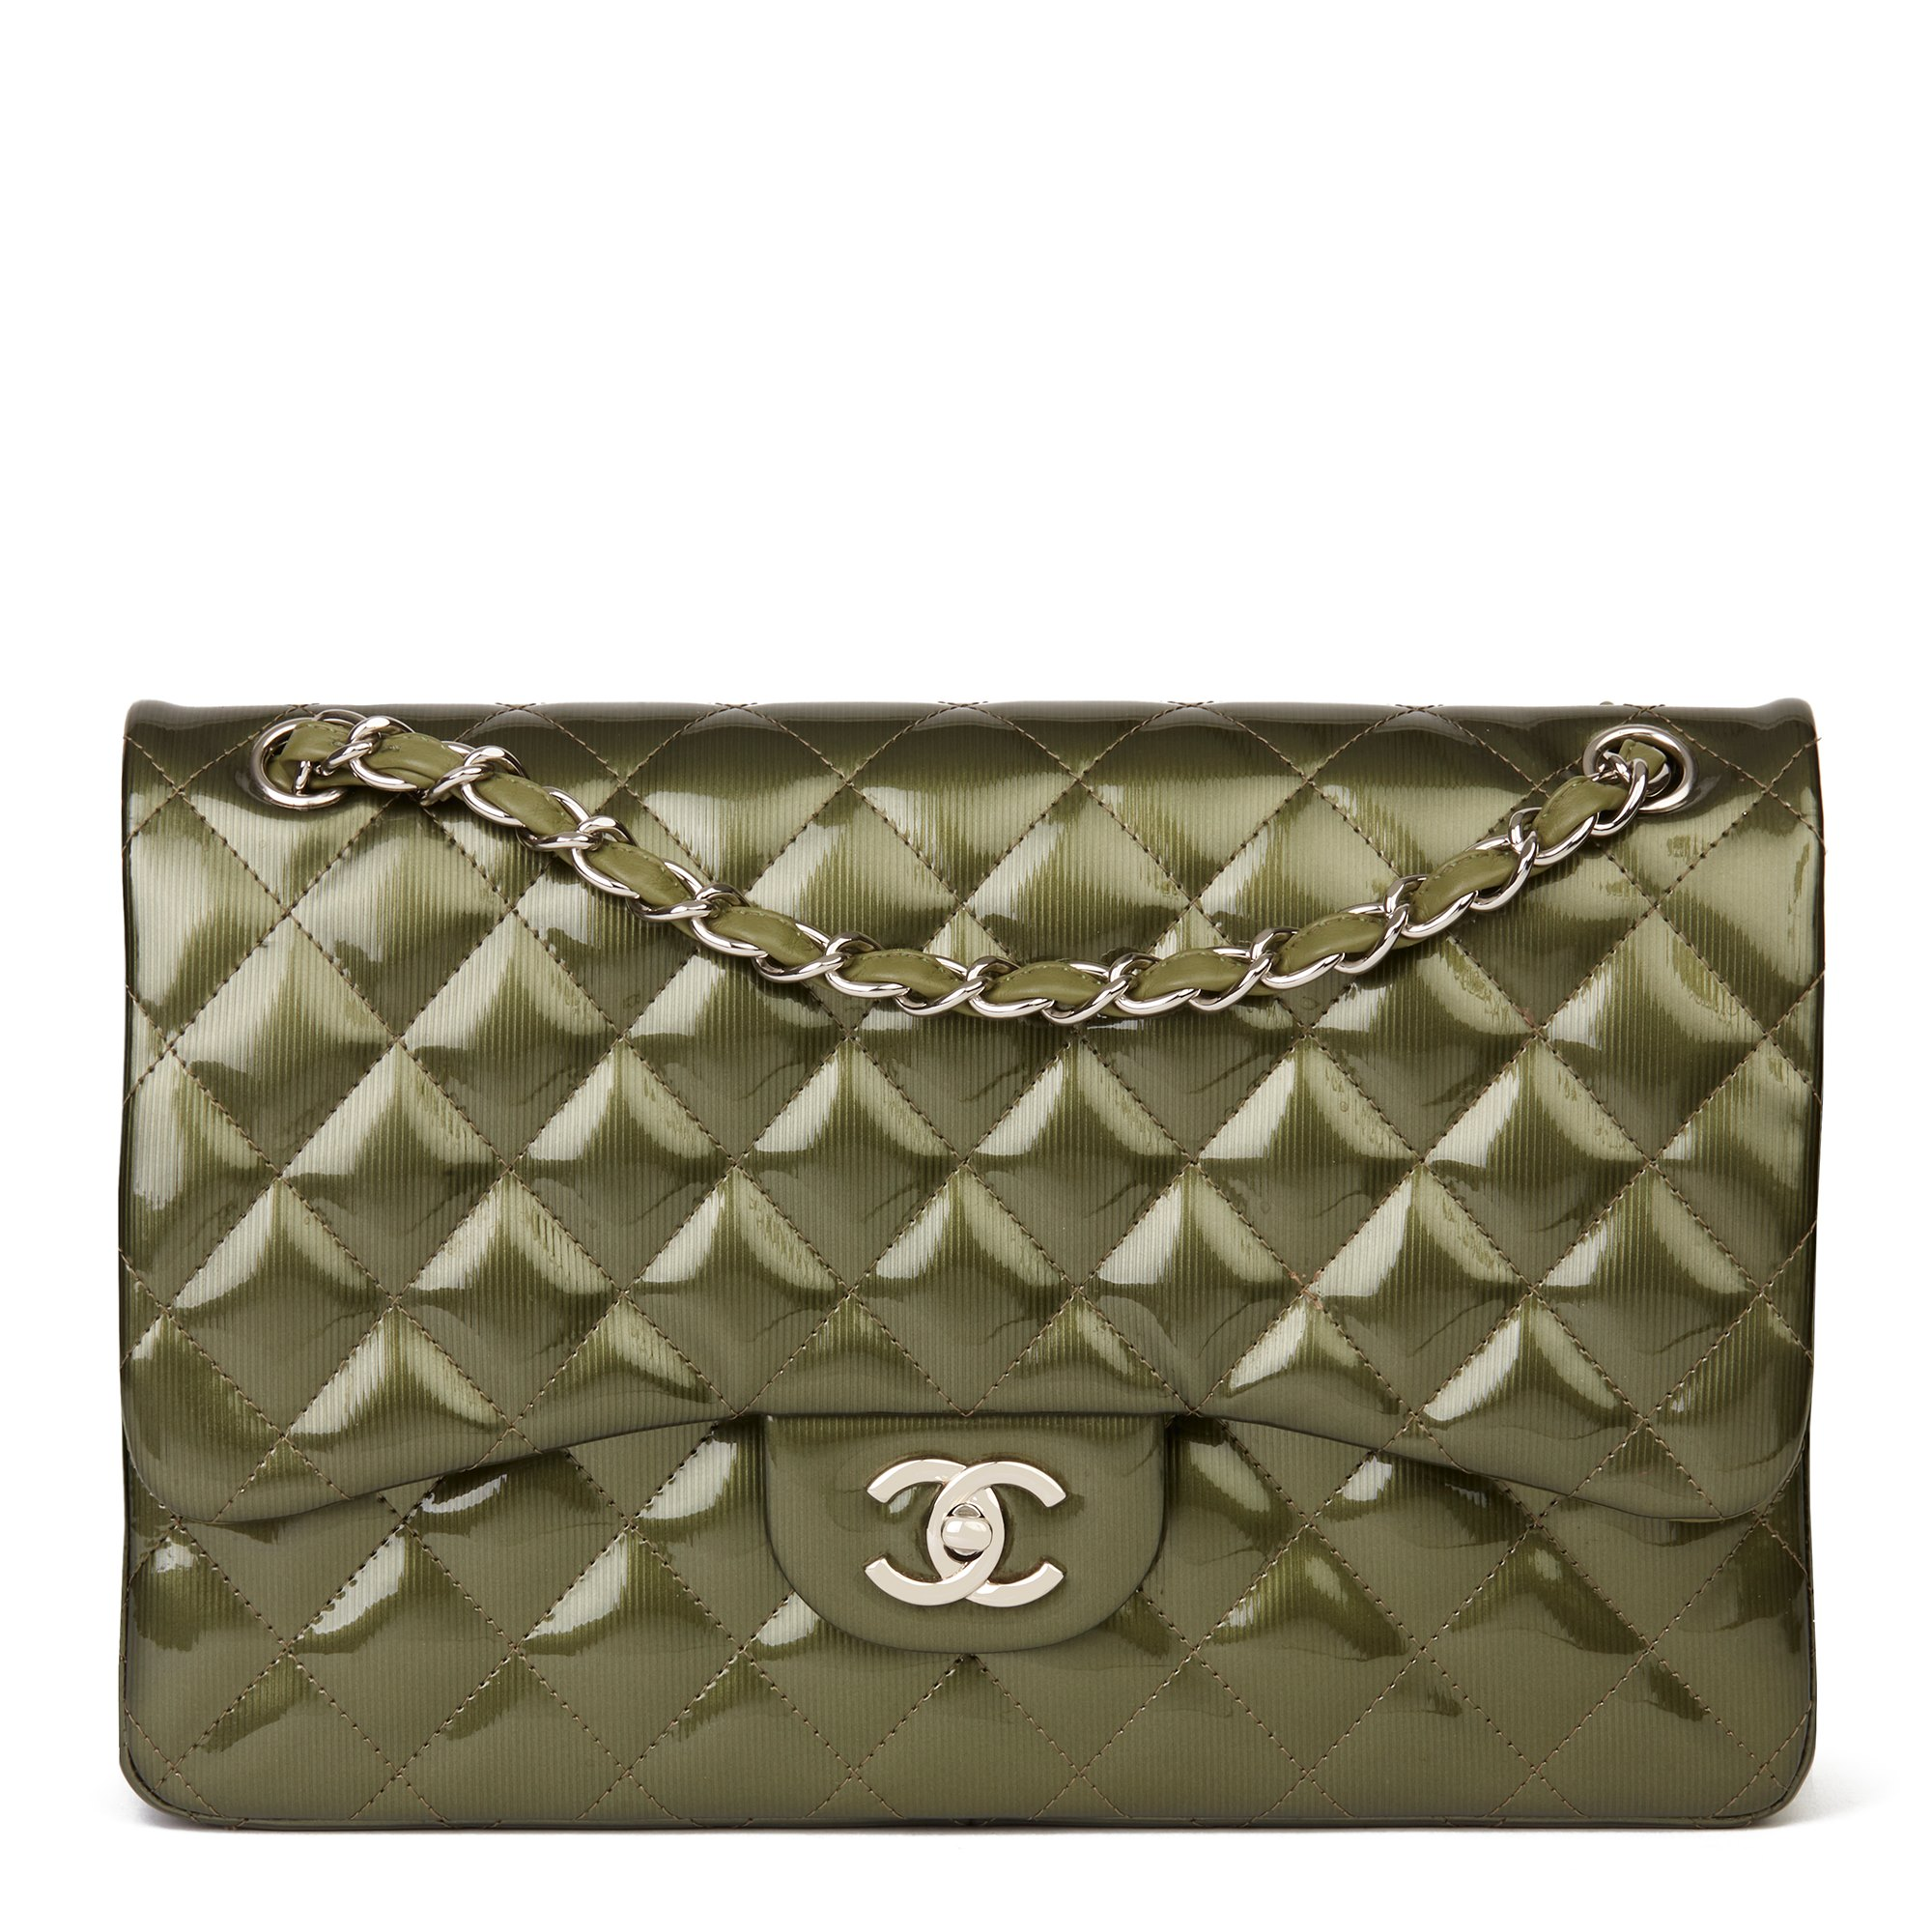 Chanel Green Vertical Embossed Patent Quilted Leather Jumbo Classic Double Flap Bag